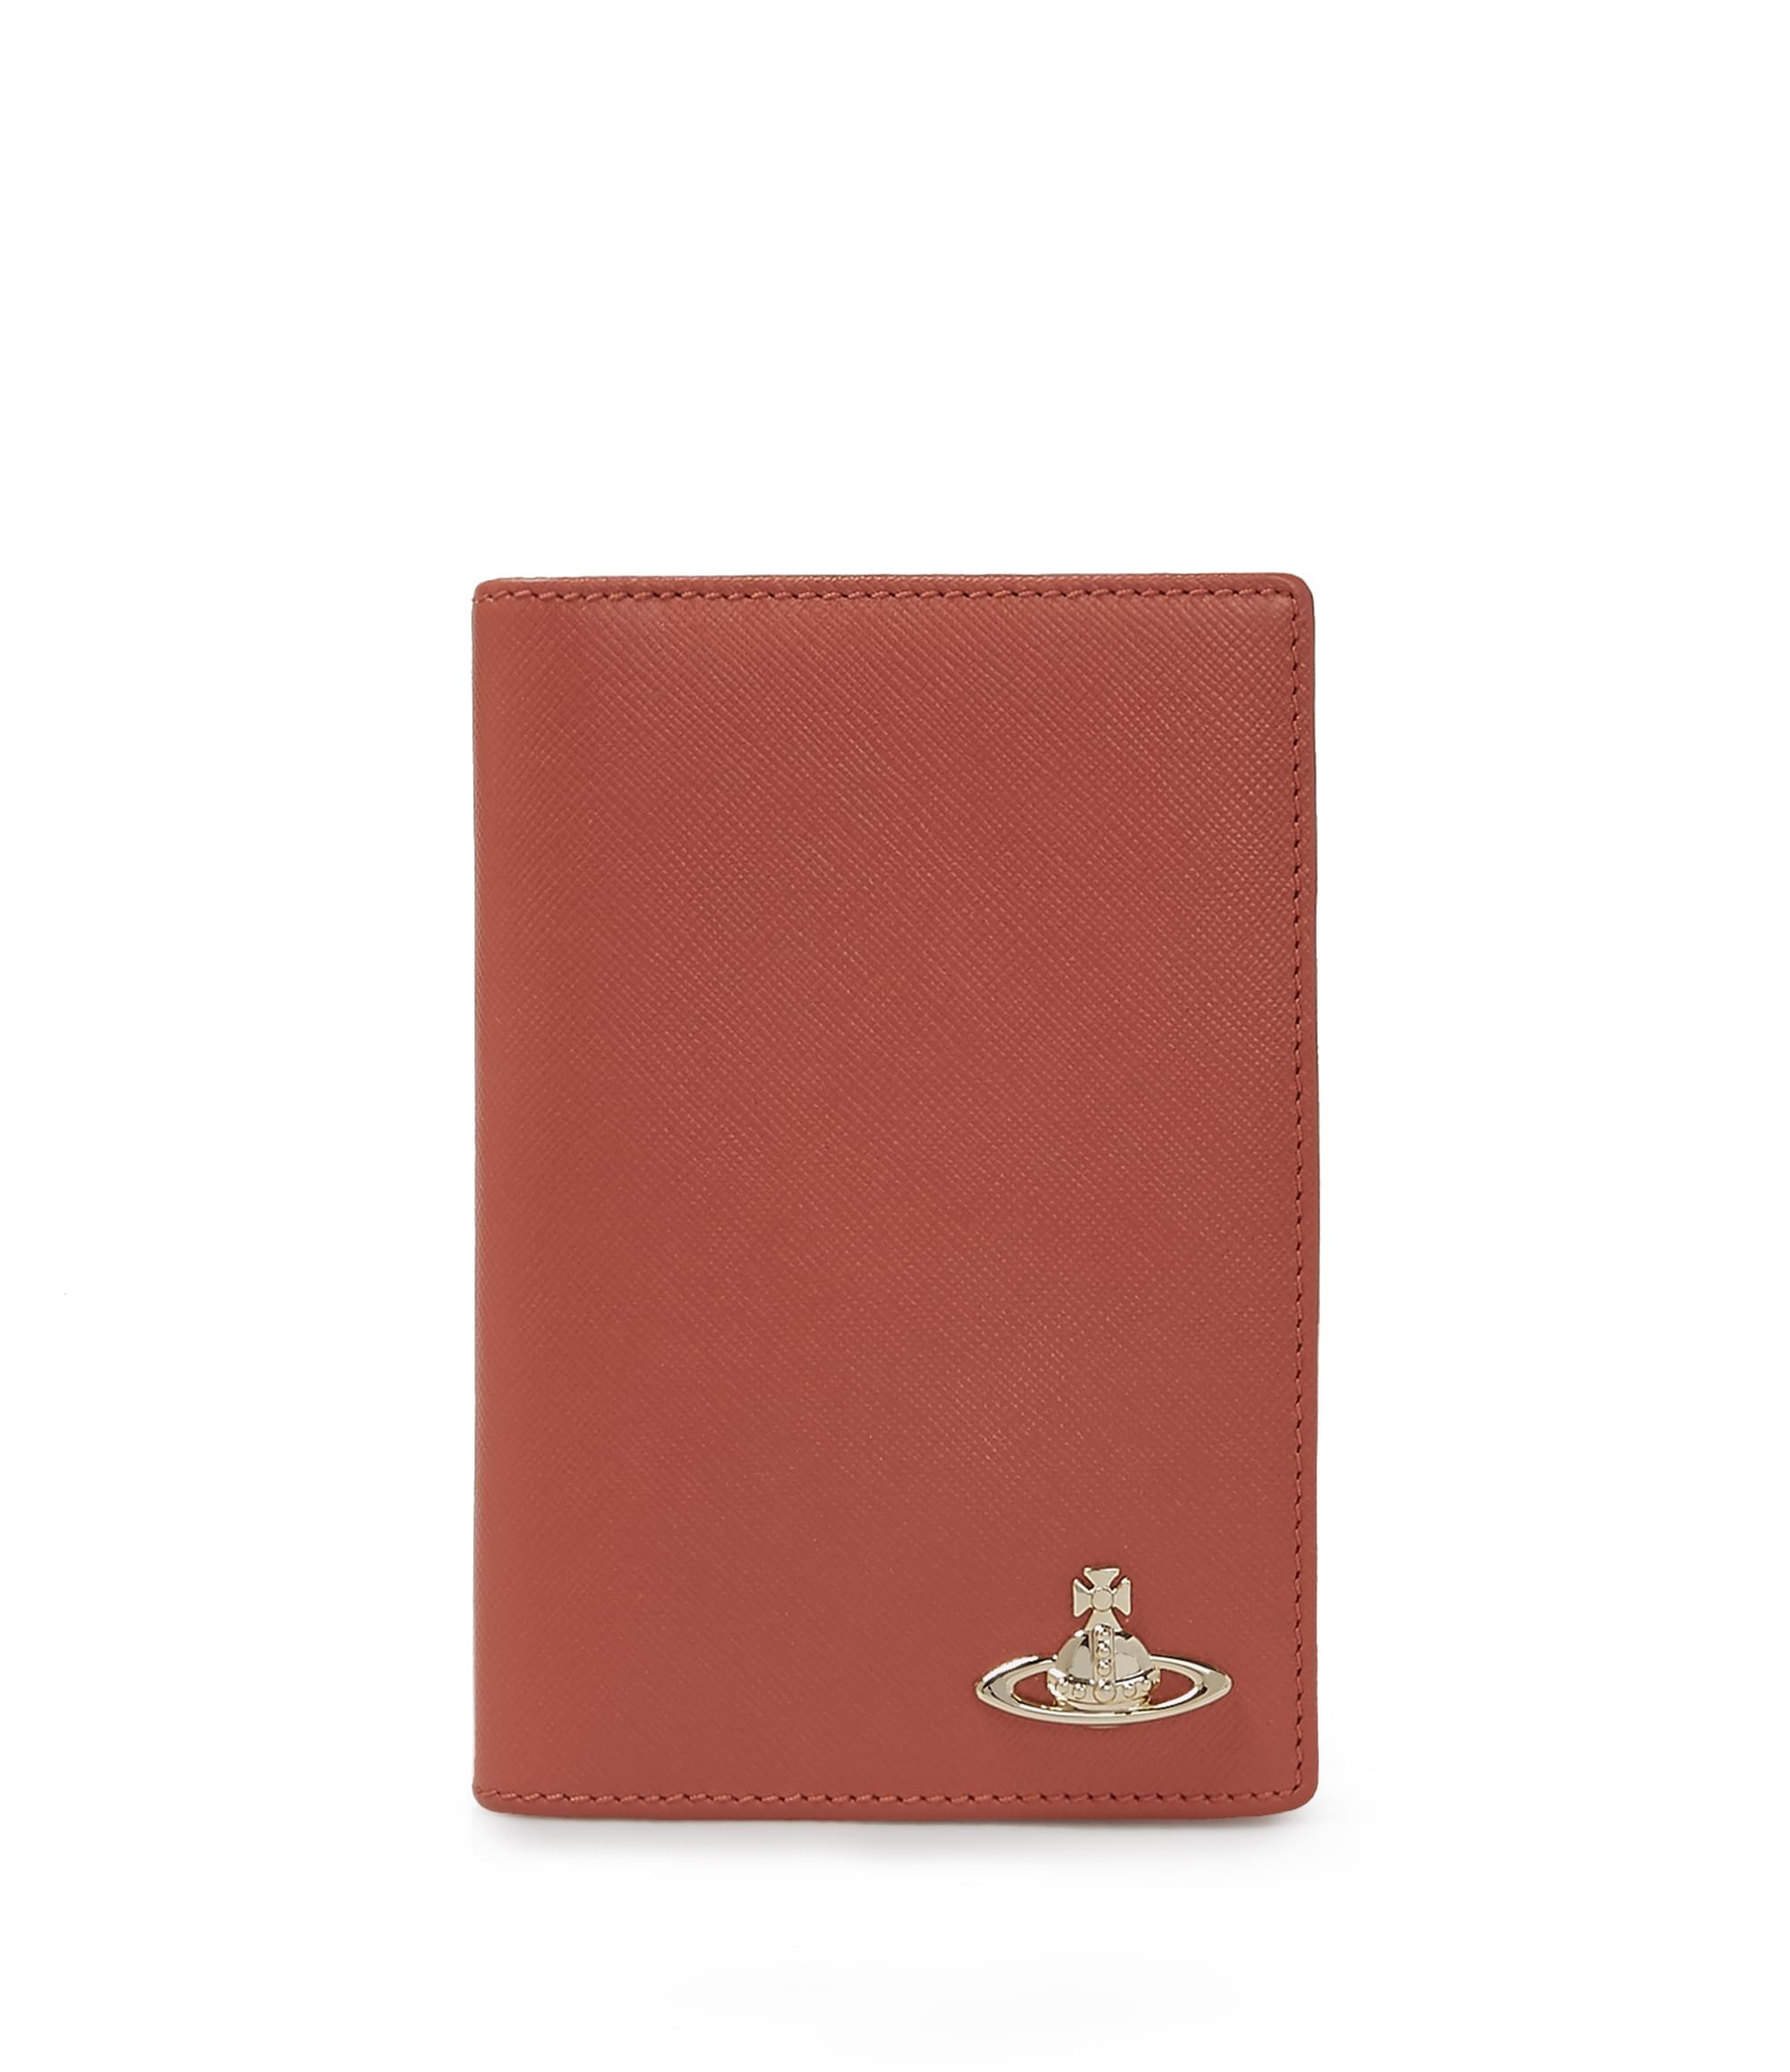 Vivienne Westwood Opio Saffiano Passport Holder 321529 Orange